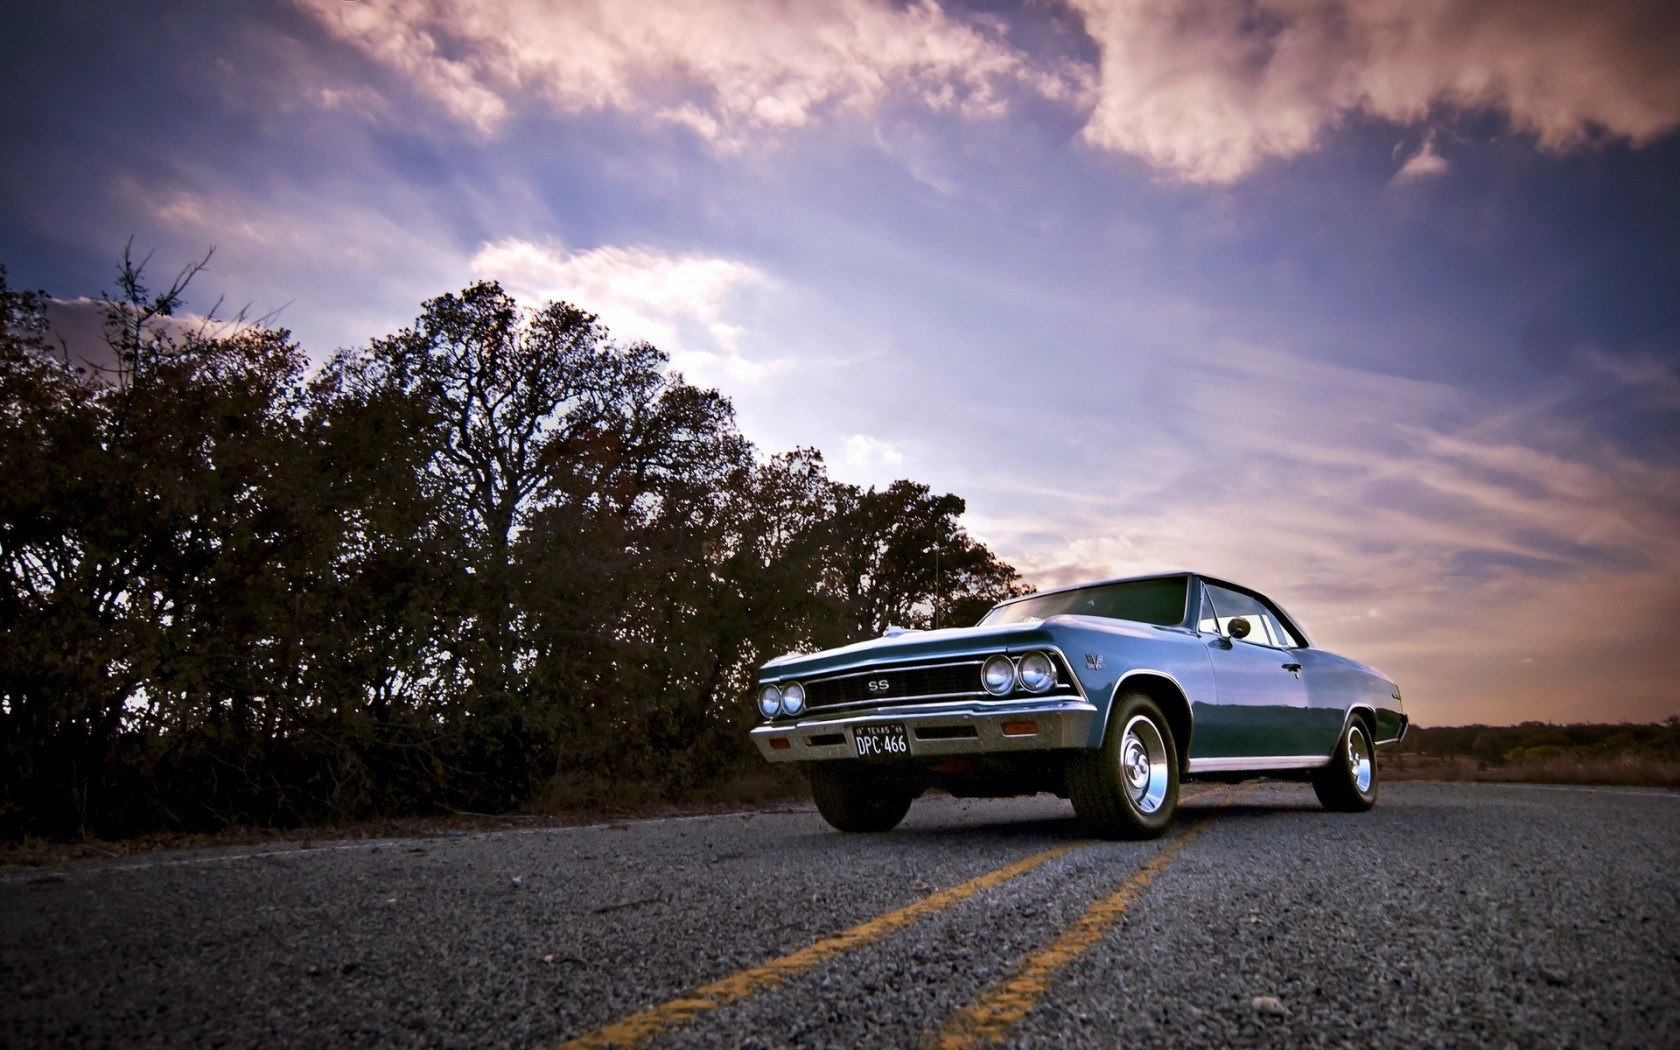 Muscle Cars Burnout Wallpapers 1966 Chevrolet Chevelle Ss Wallpaper And Background Image